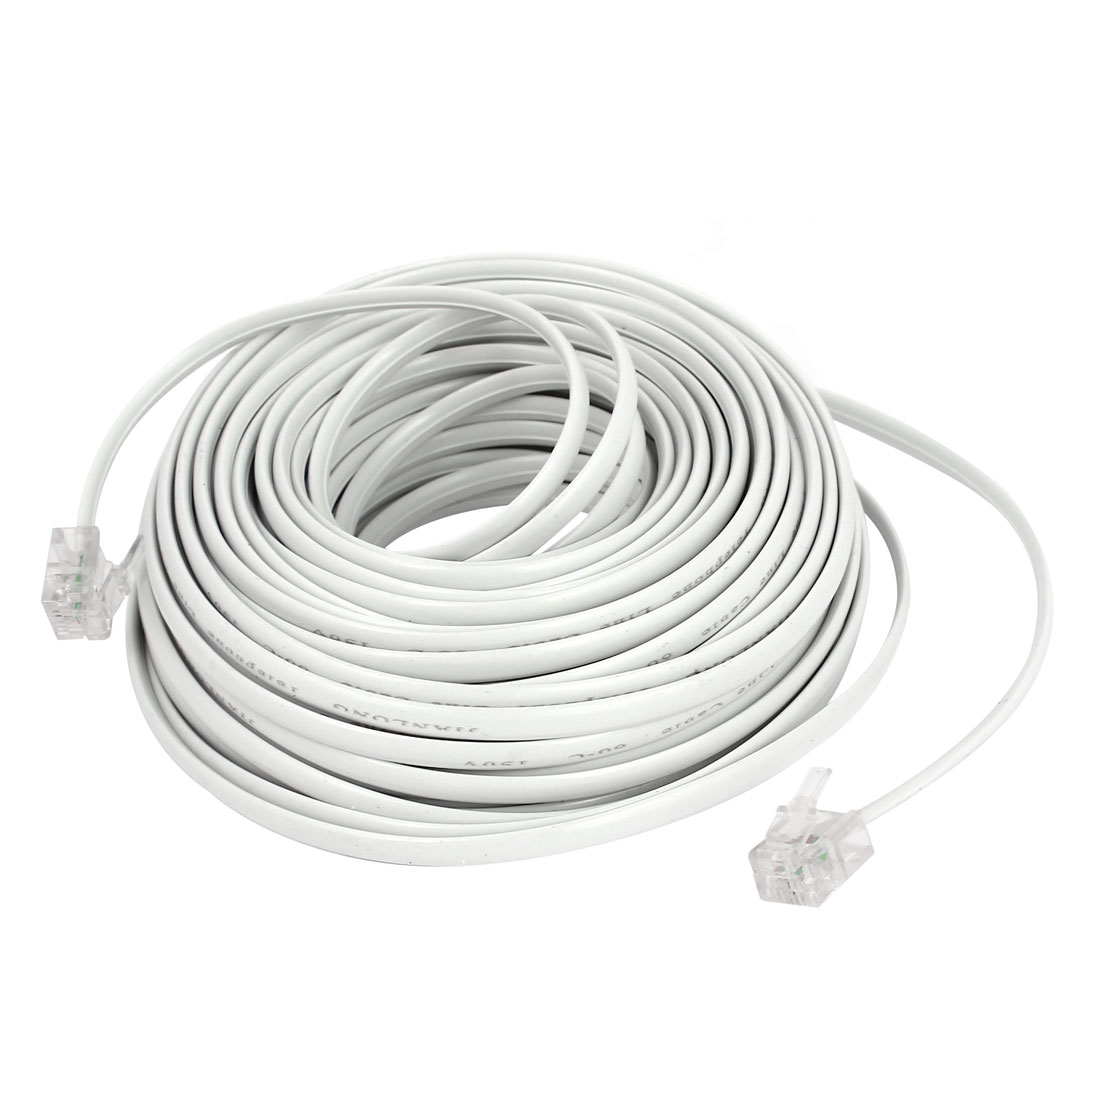 15Mm 50Ft Long RJ11 6P2C Male to Male Plug Telephone Phone Connector ...